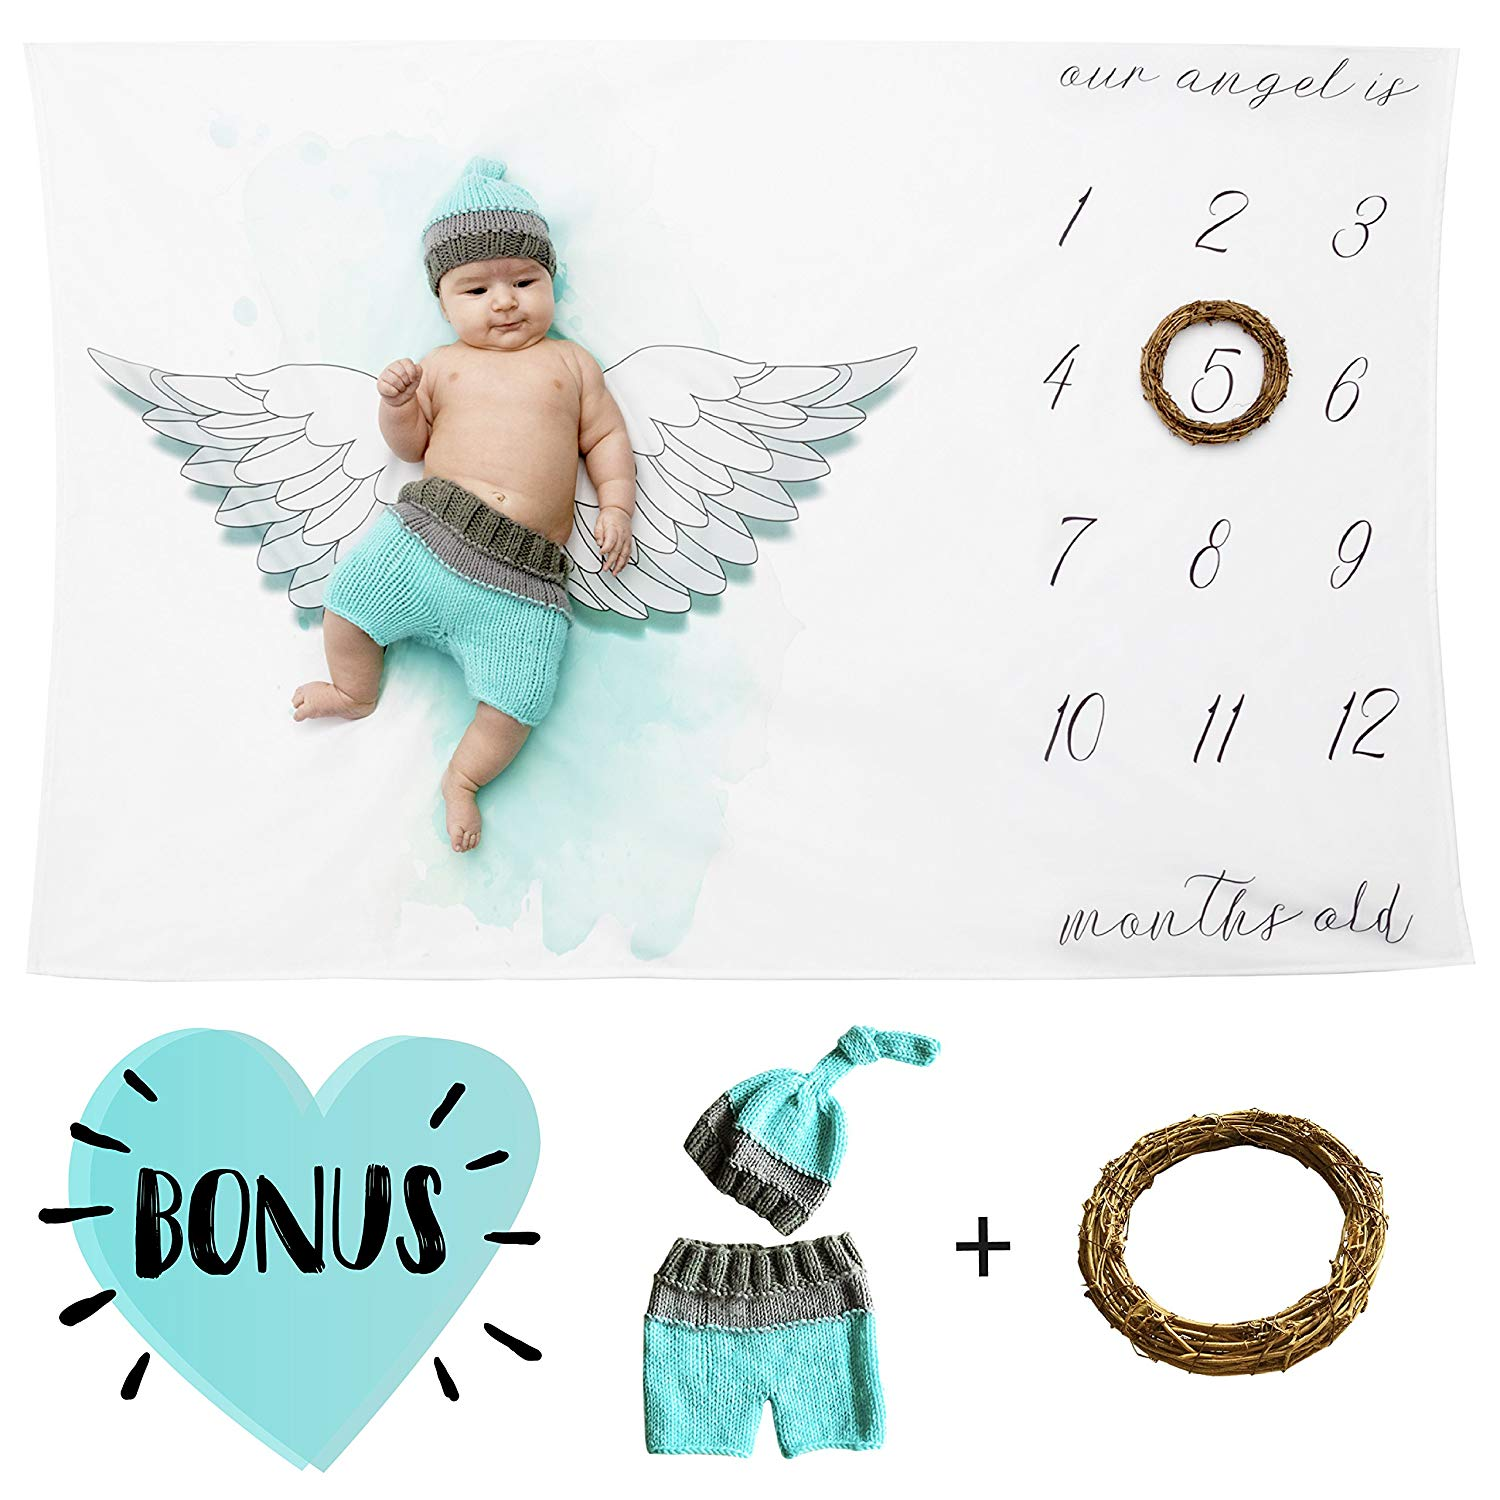 Baby Milestone Blanket-Set Includes: Blanket,Newborn Outfit Cloth Crochet and Leaf-Frame | Great New Mom Shower Gift For Toddler Boys and Girls To Track Monthly Growth | Swaddle Blanket For Photo Prop